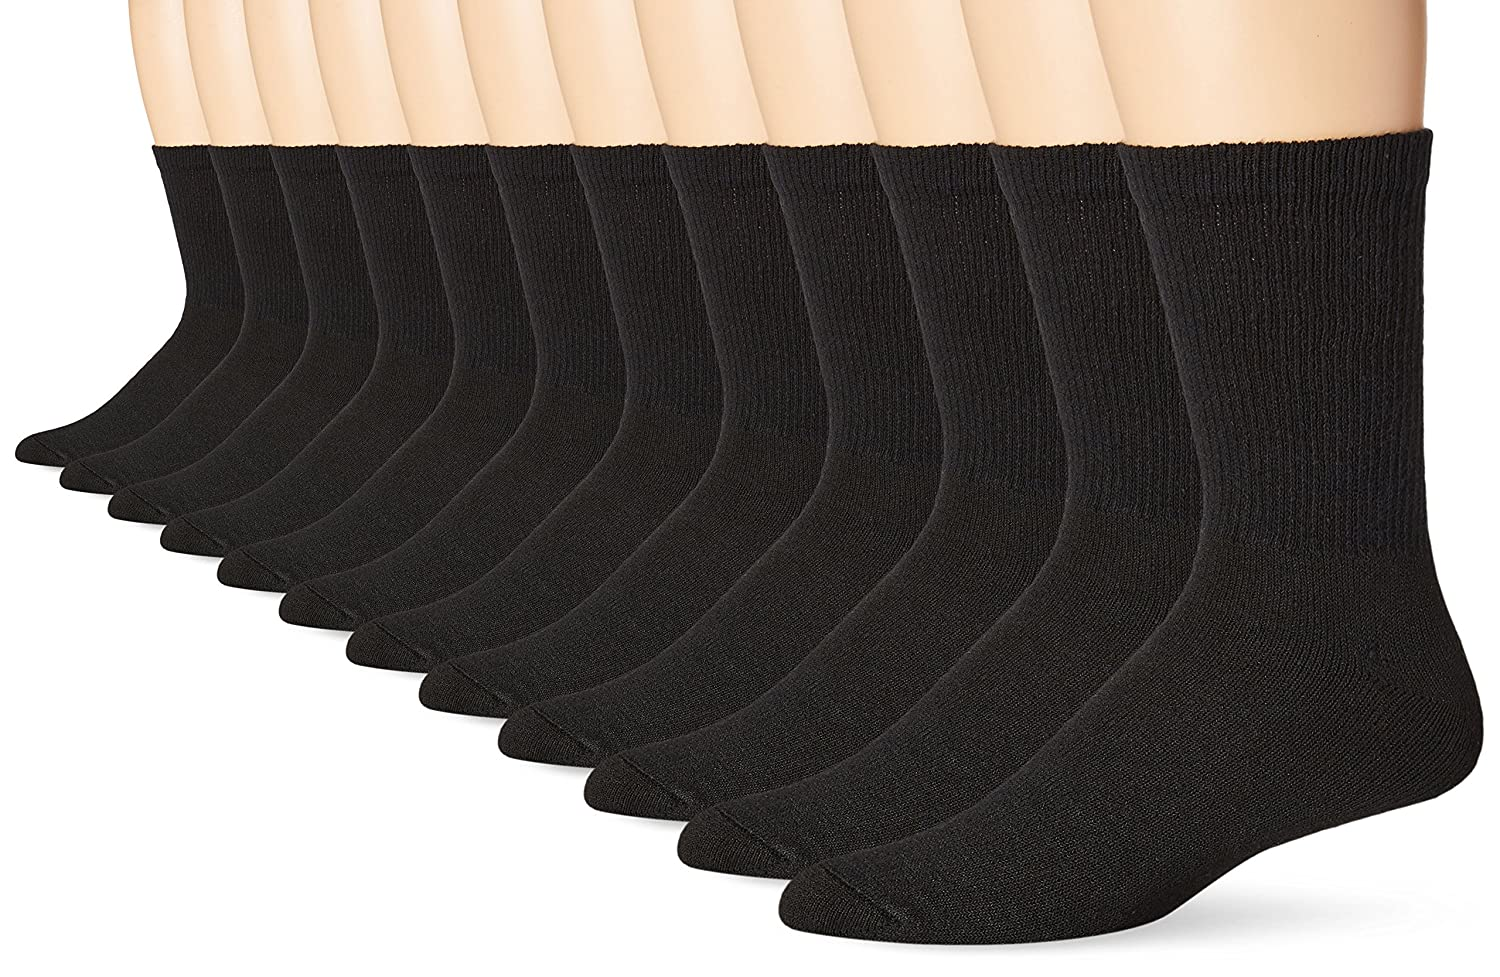 Hanes Men's 12 Pack Crew Socks, Black, 10-13/Shoe Size 6-12 Hanes Men' s Socks 184V13